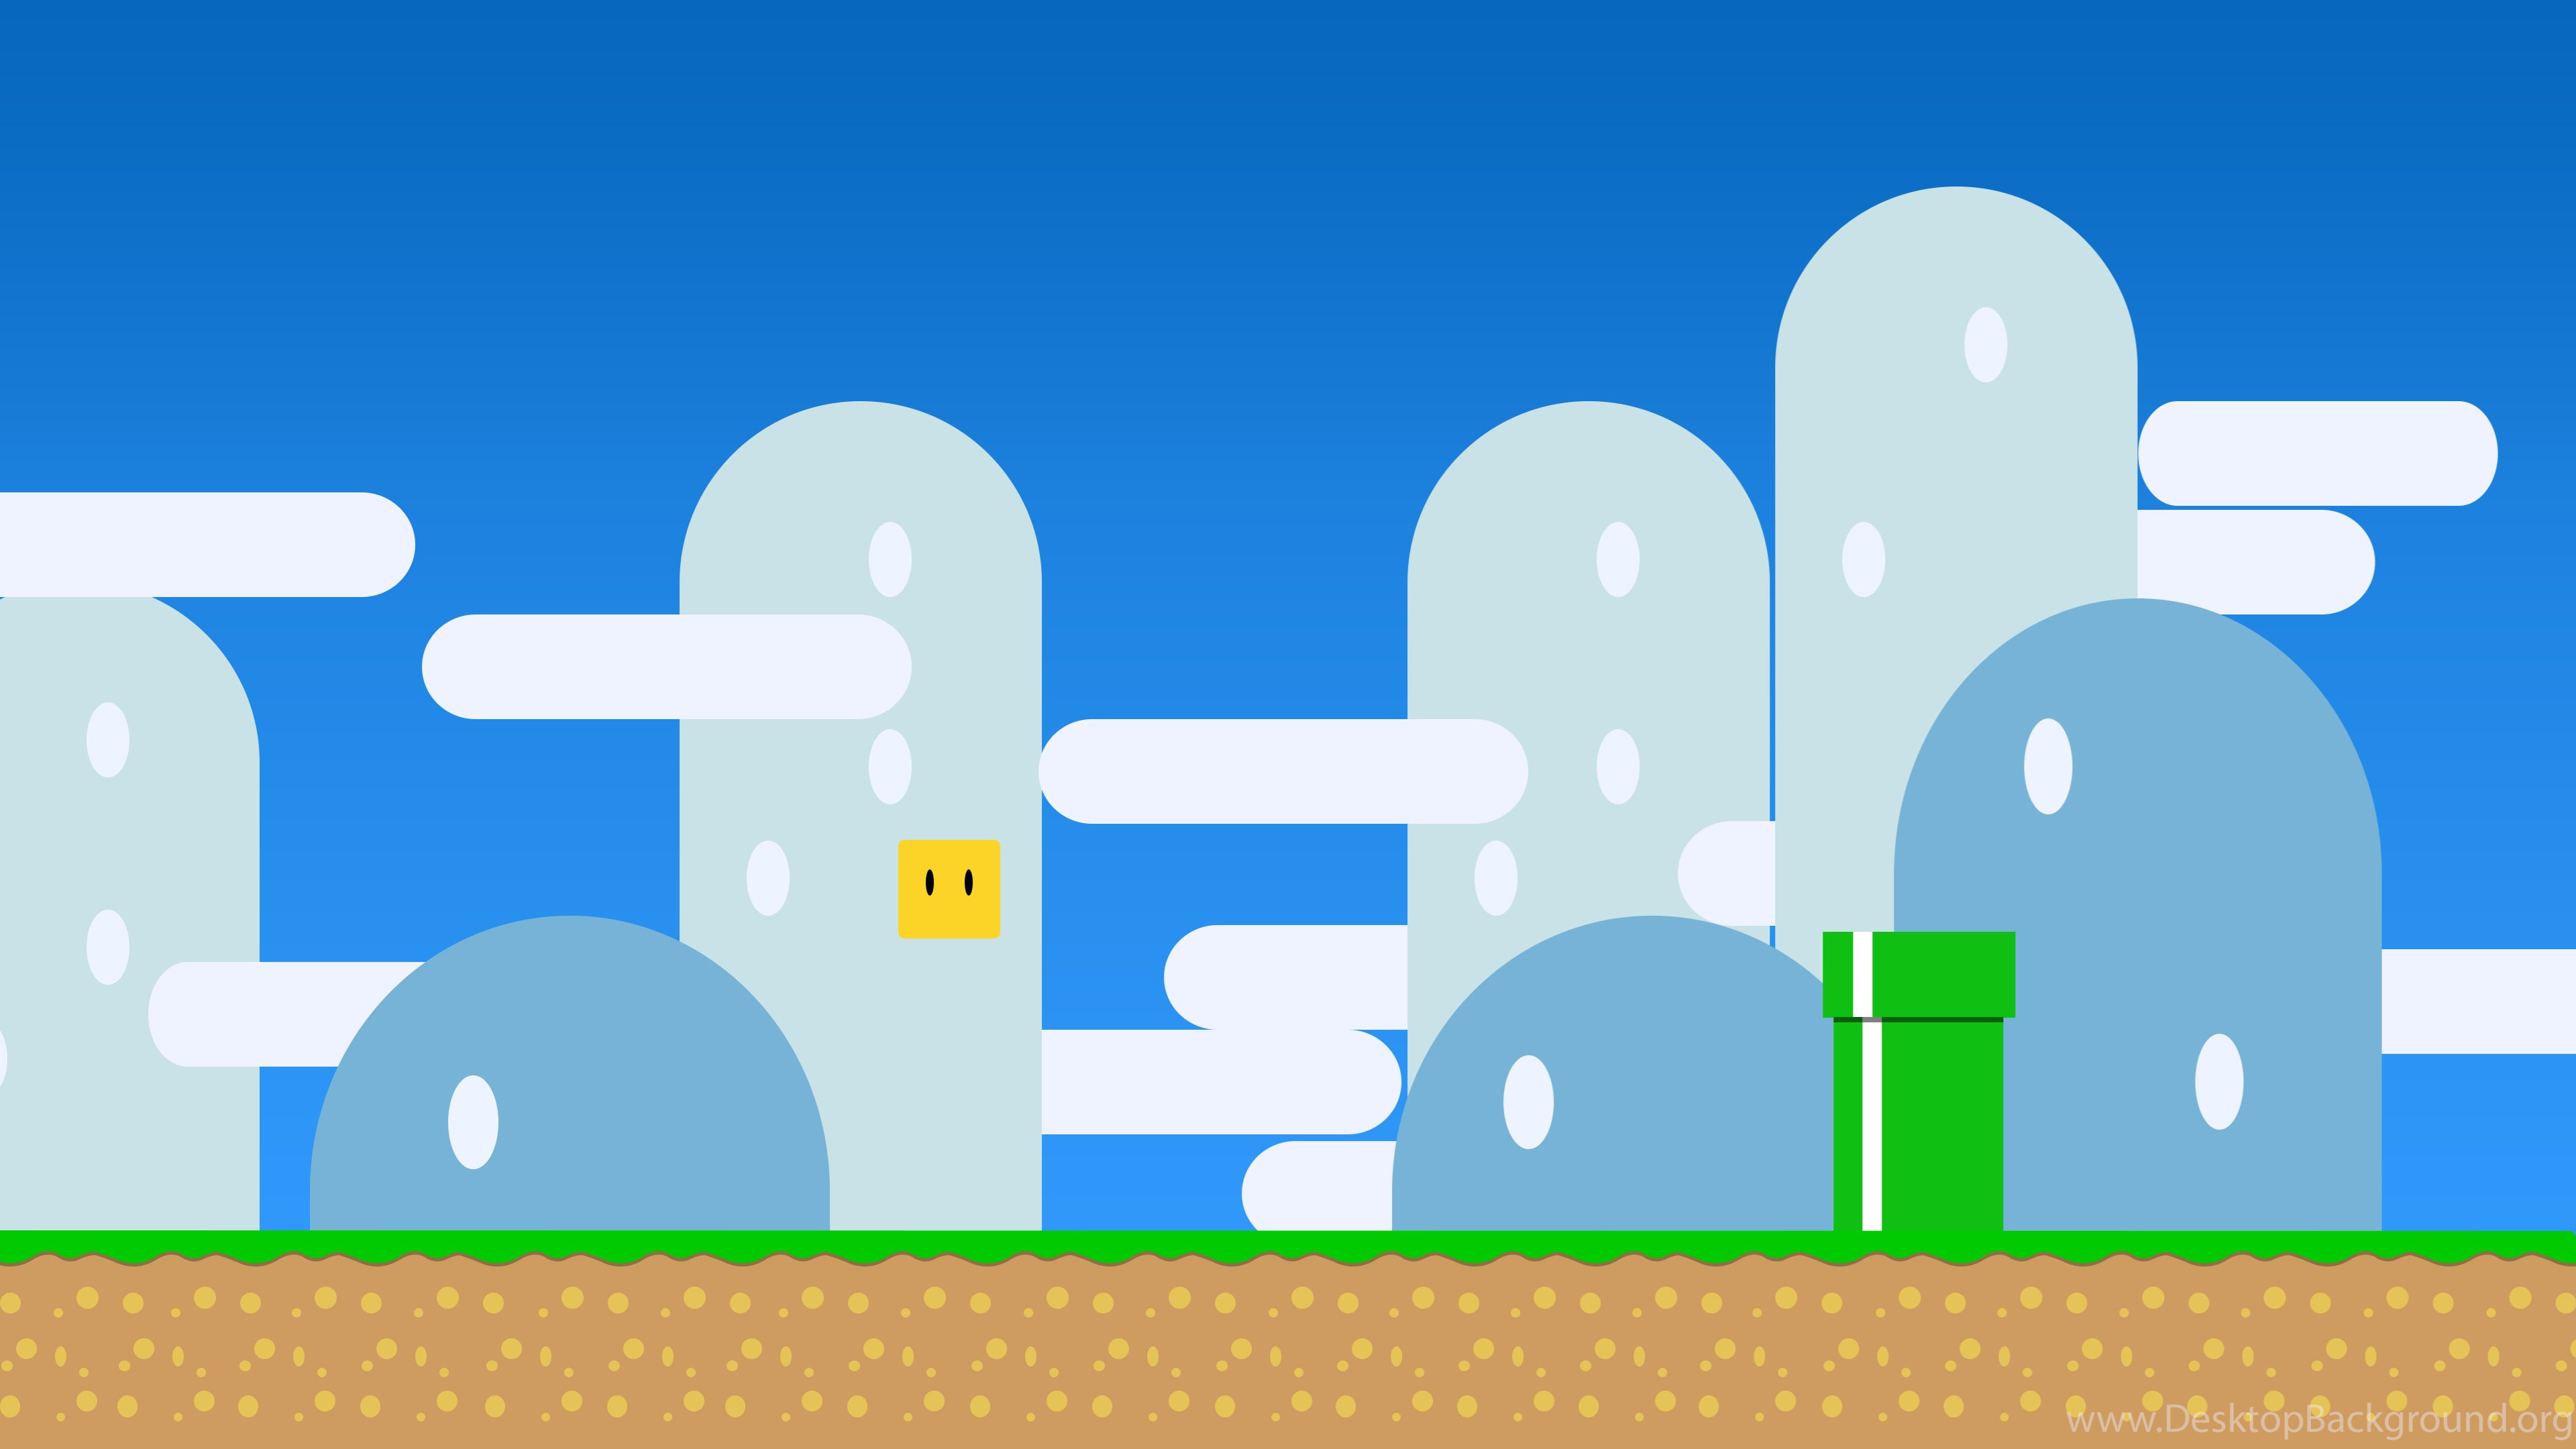 3840x2160 Super Mario World Minimal Wallpapers By NicolasNSane On DeviantArt